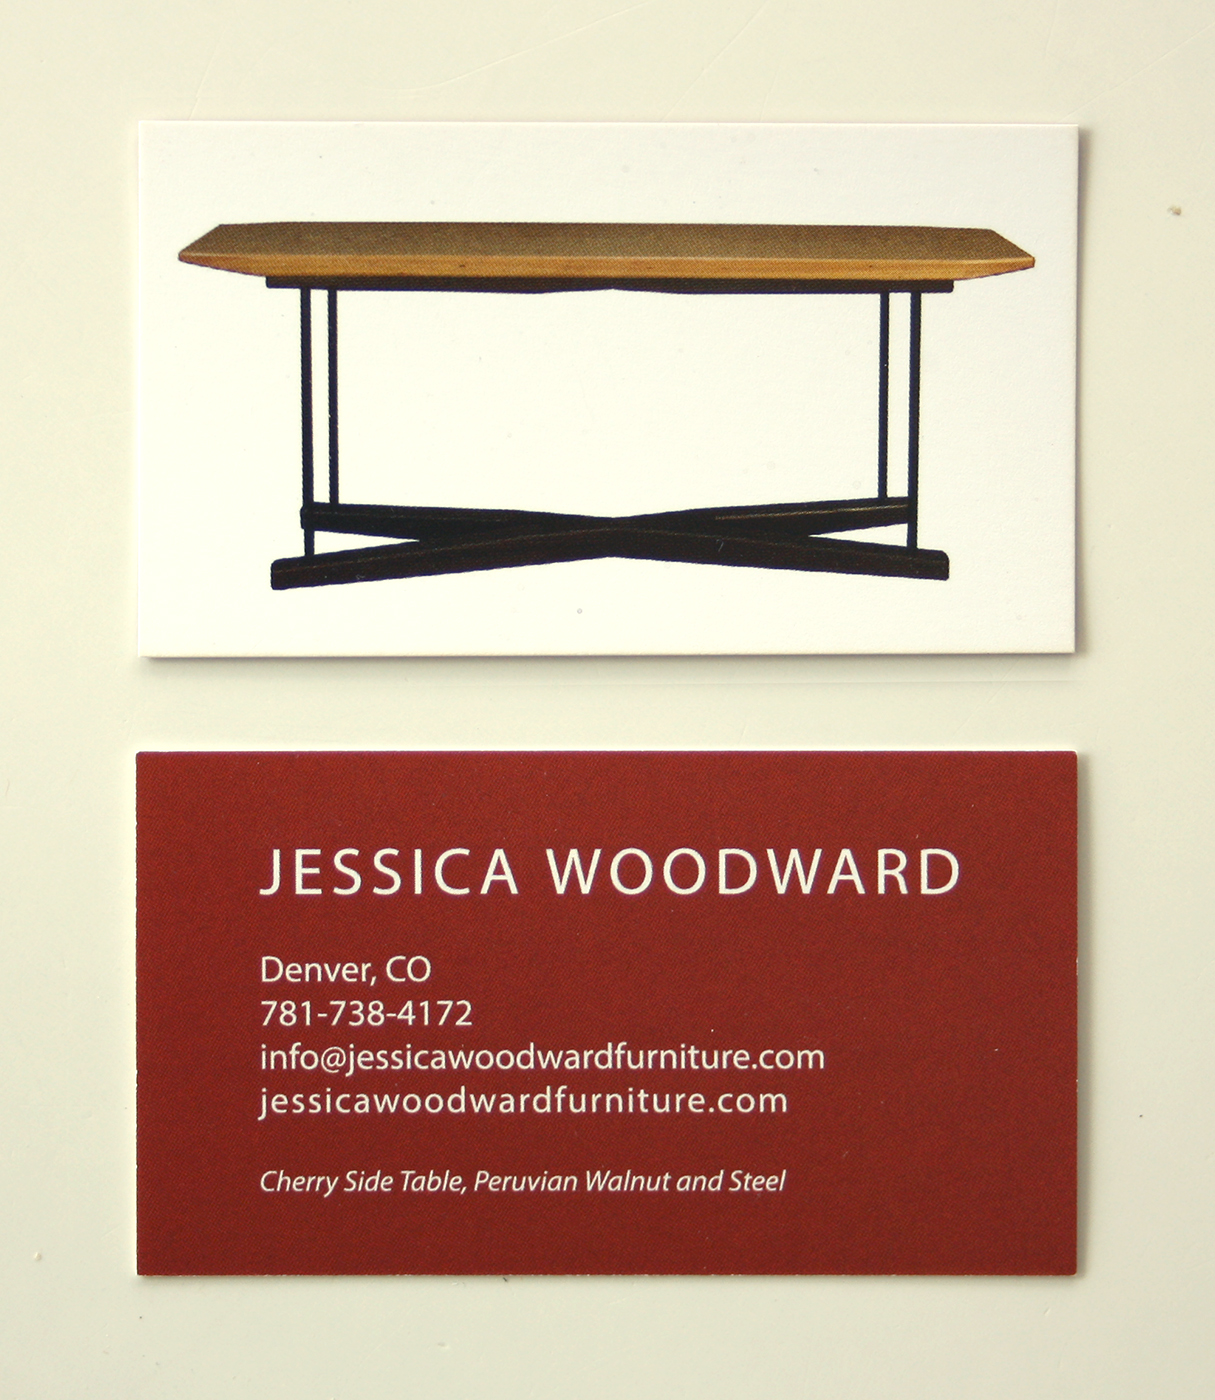 Jessica Woodward Furniture Business Card